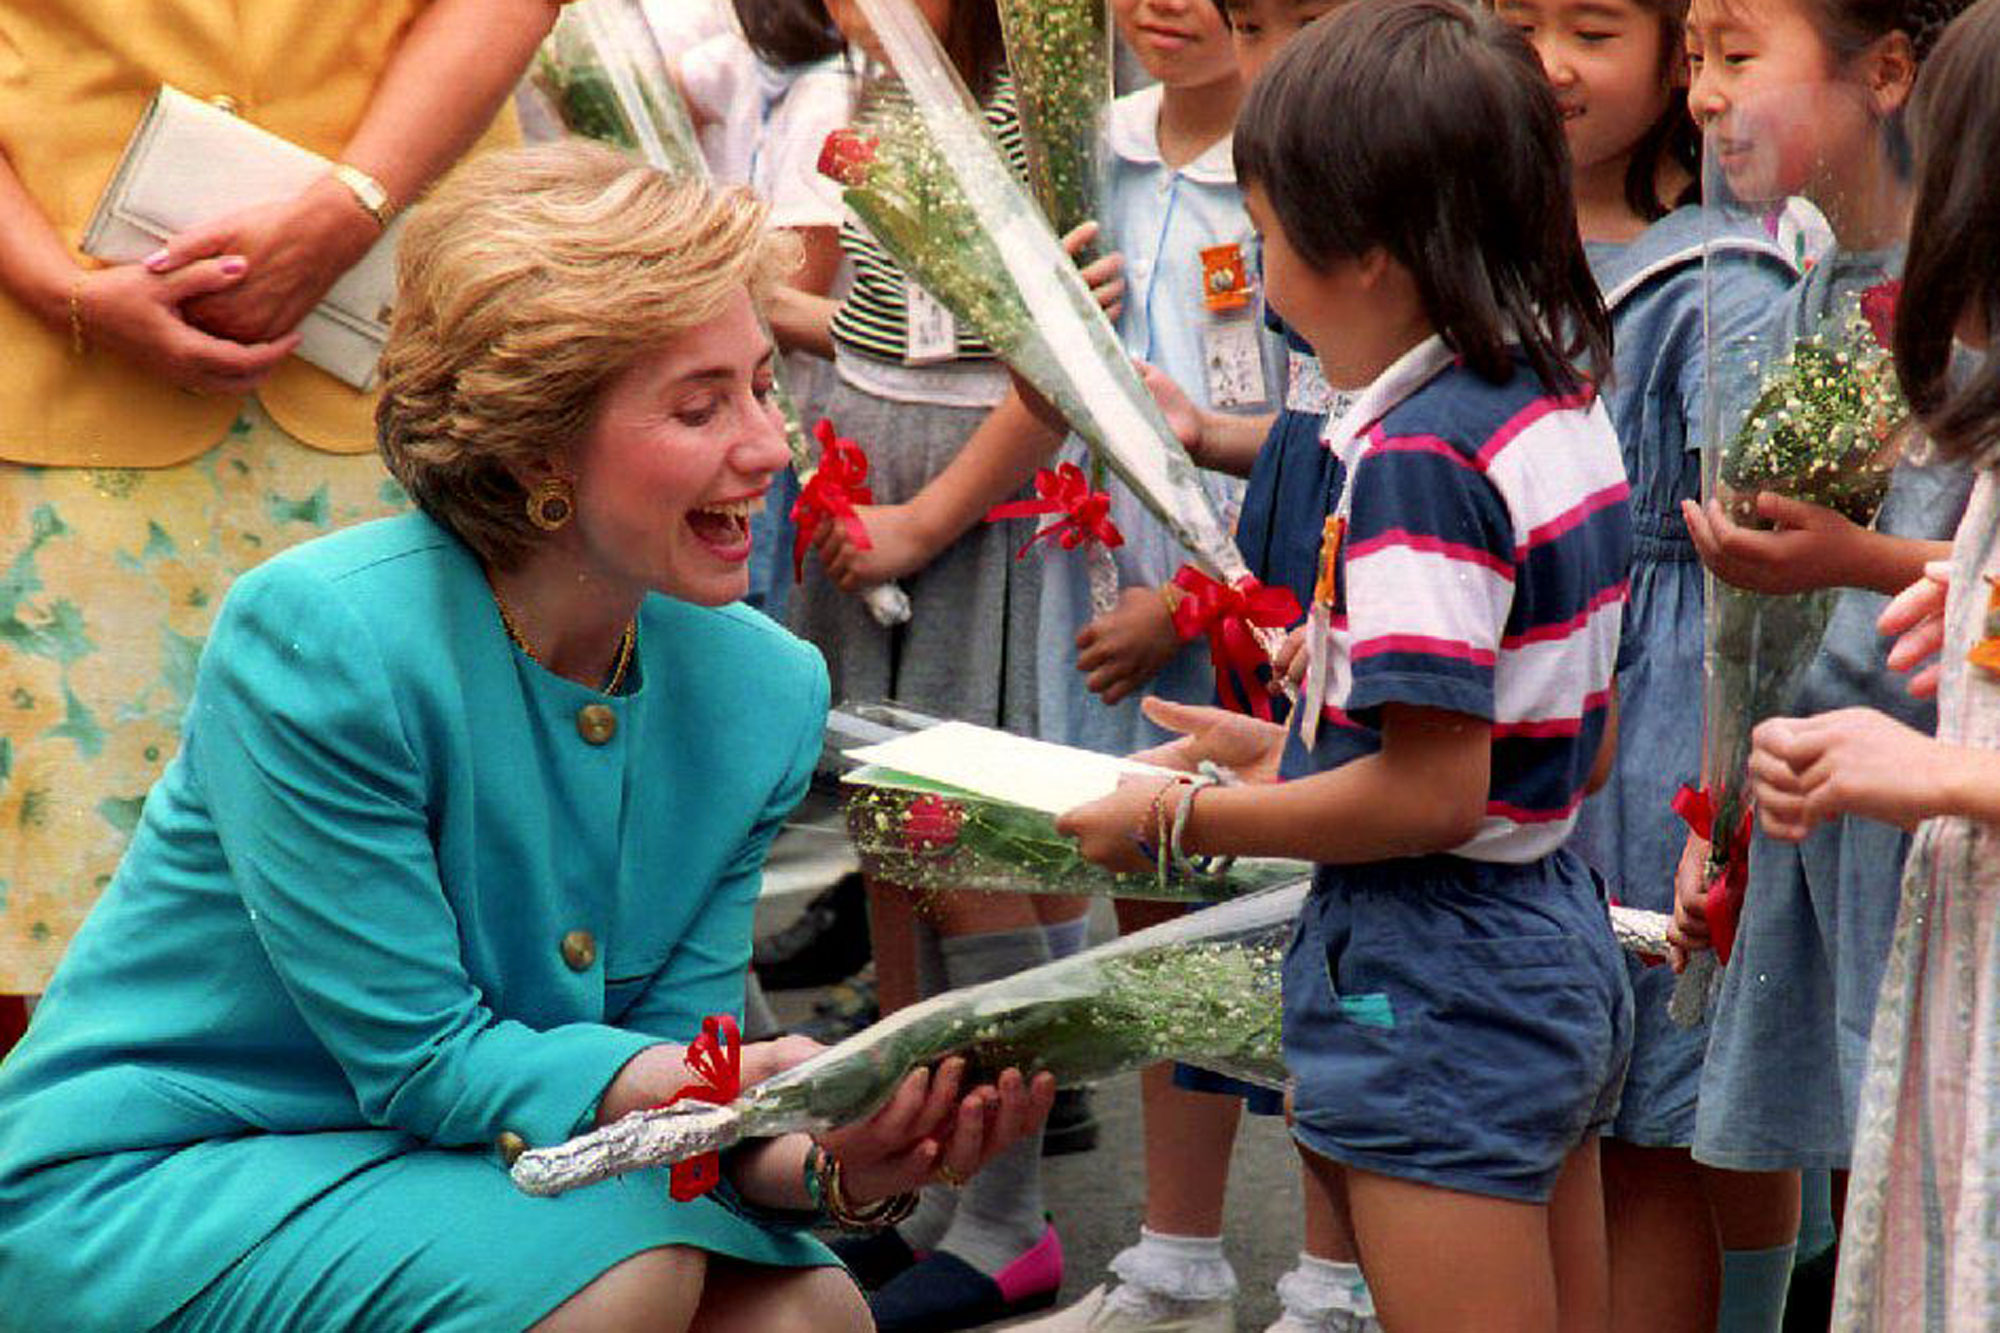 TOKYO, JAPAN - JULY 8: U.S. First Lady Hillary Rodham Clinton laughs as she is presented a bouquet of flowers by Japanee children 08 July 1993 at the Meguro waste incineration plant in Tokyo, Japan. Mrs. Clinton, maintaining a high profile during the G7 summit, is popular in Japan. (Photo credit should read DAVID NELSON/AFP/Getty Images)